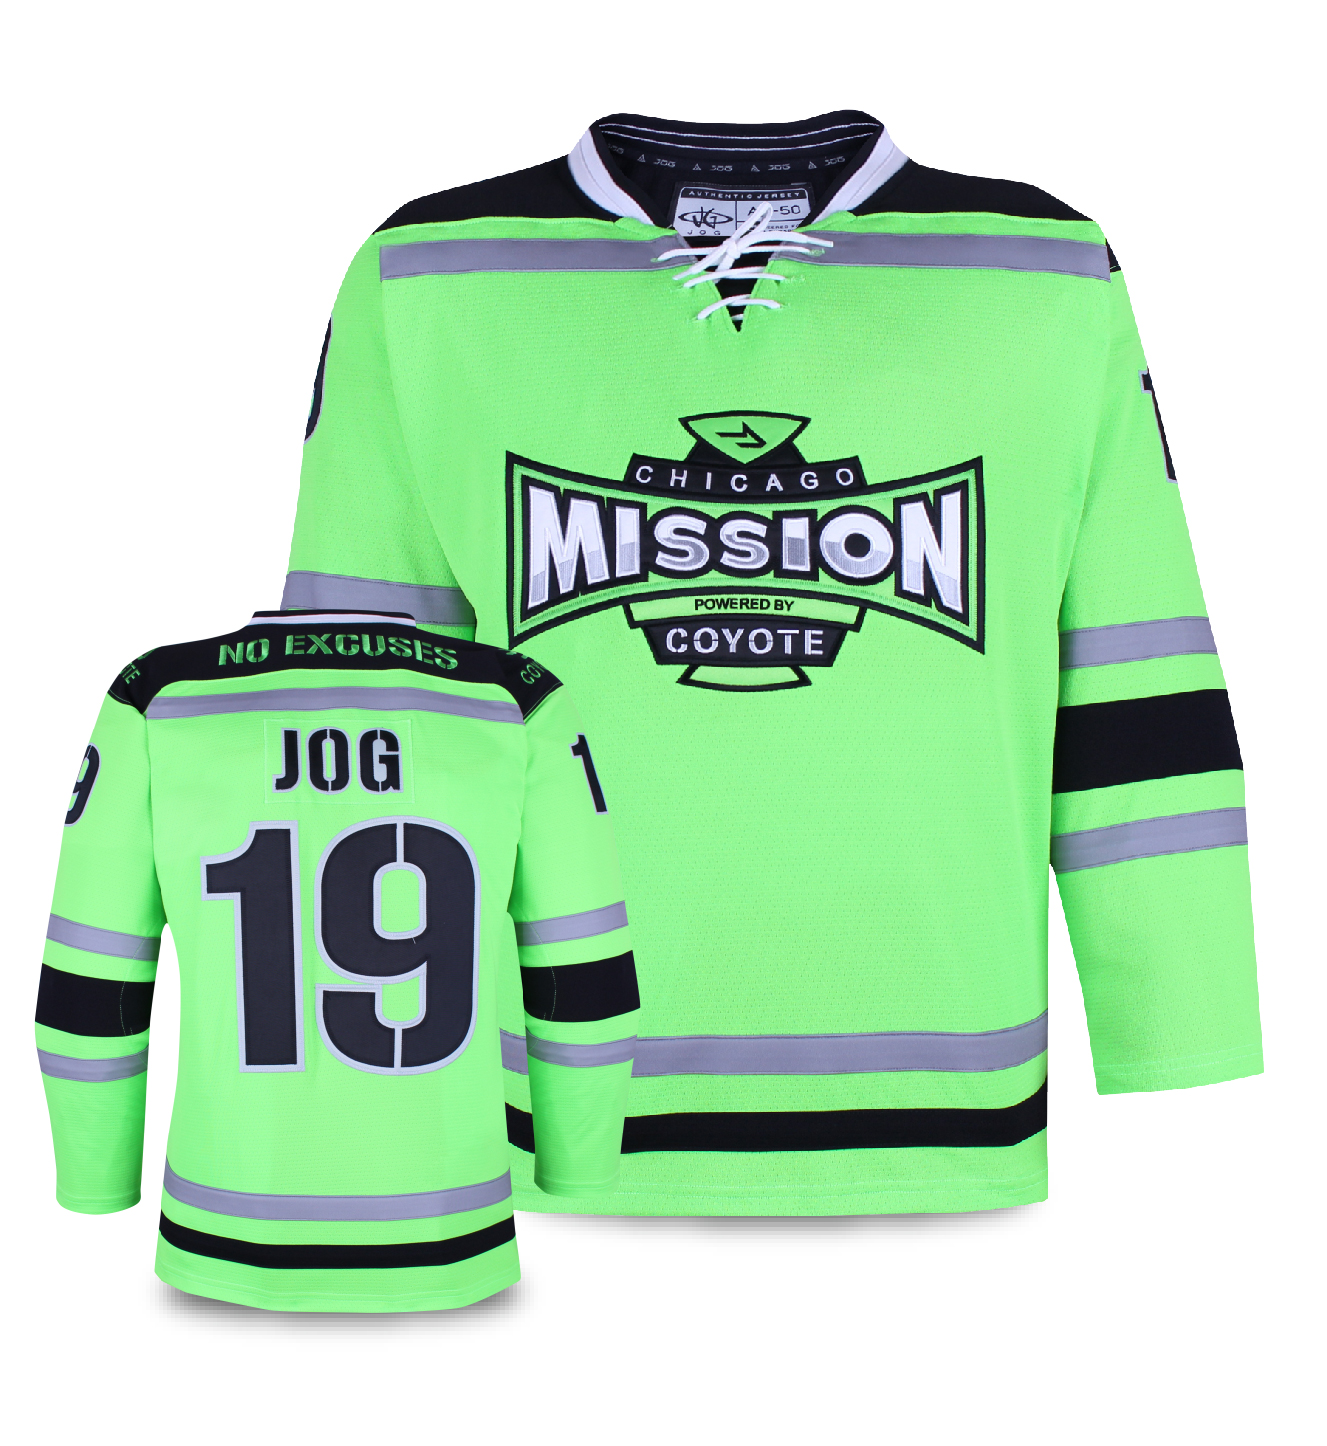 Chicago Mission custom hockey jersey for the men's ice hockey and women's ice hockey teams. NHL jersey quality ice hockey jersey.